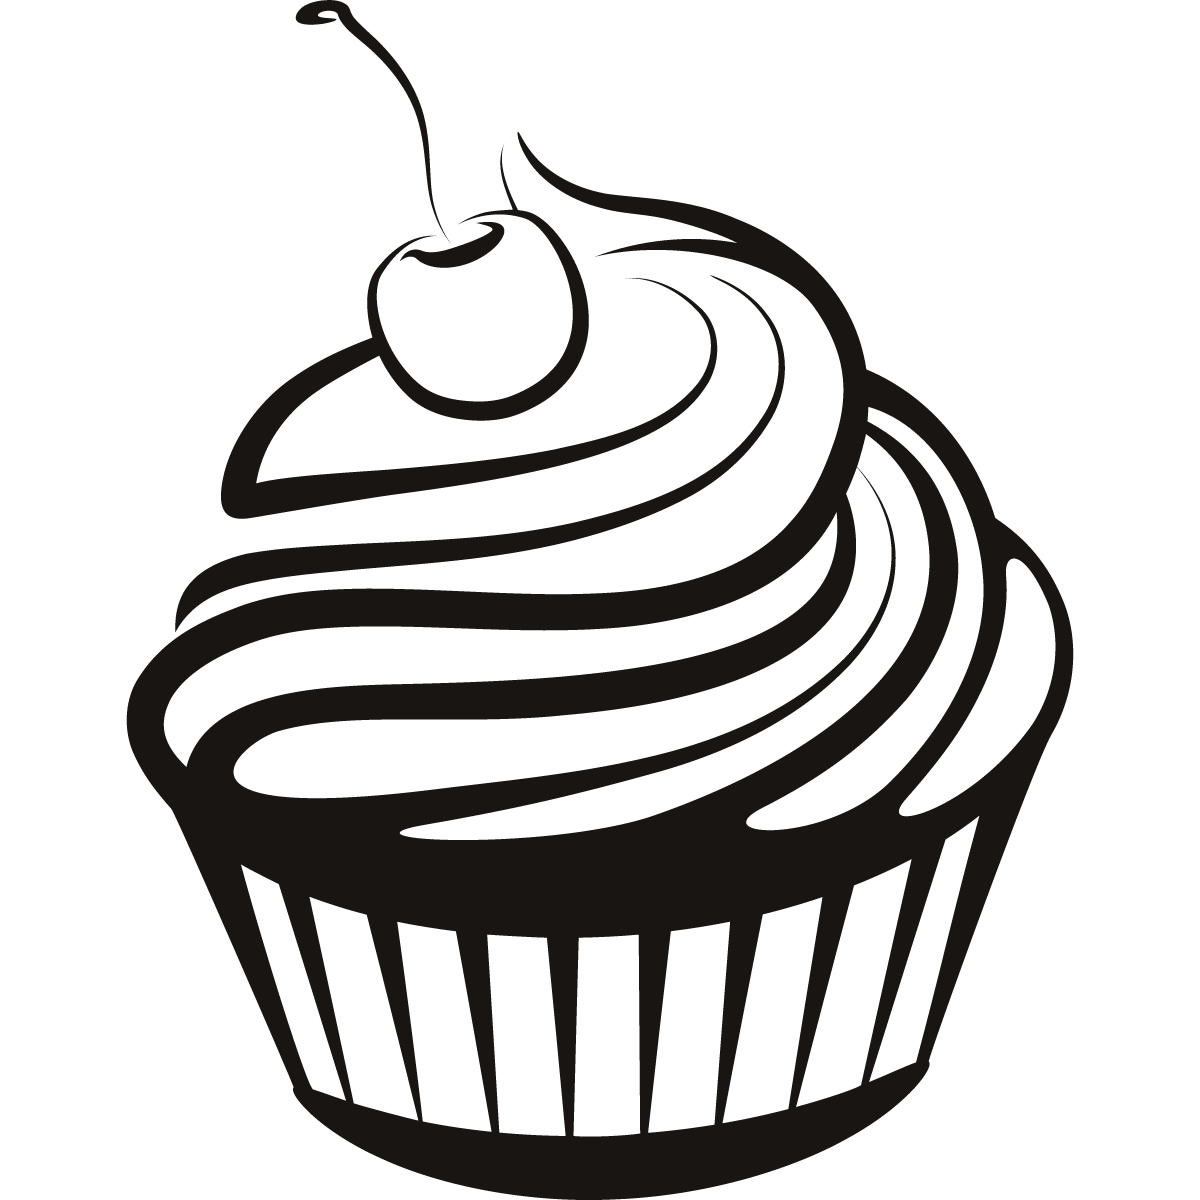 Cupcake Black And White Cupcake Clipart Black And White 6